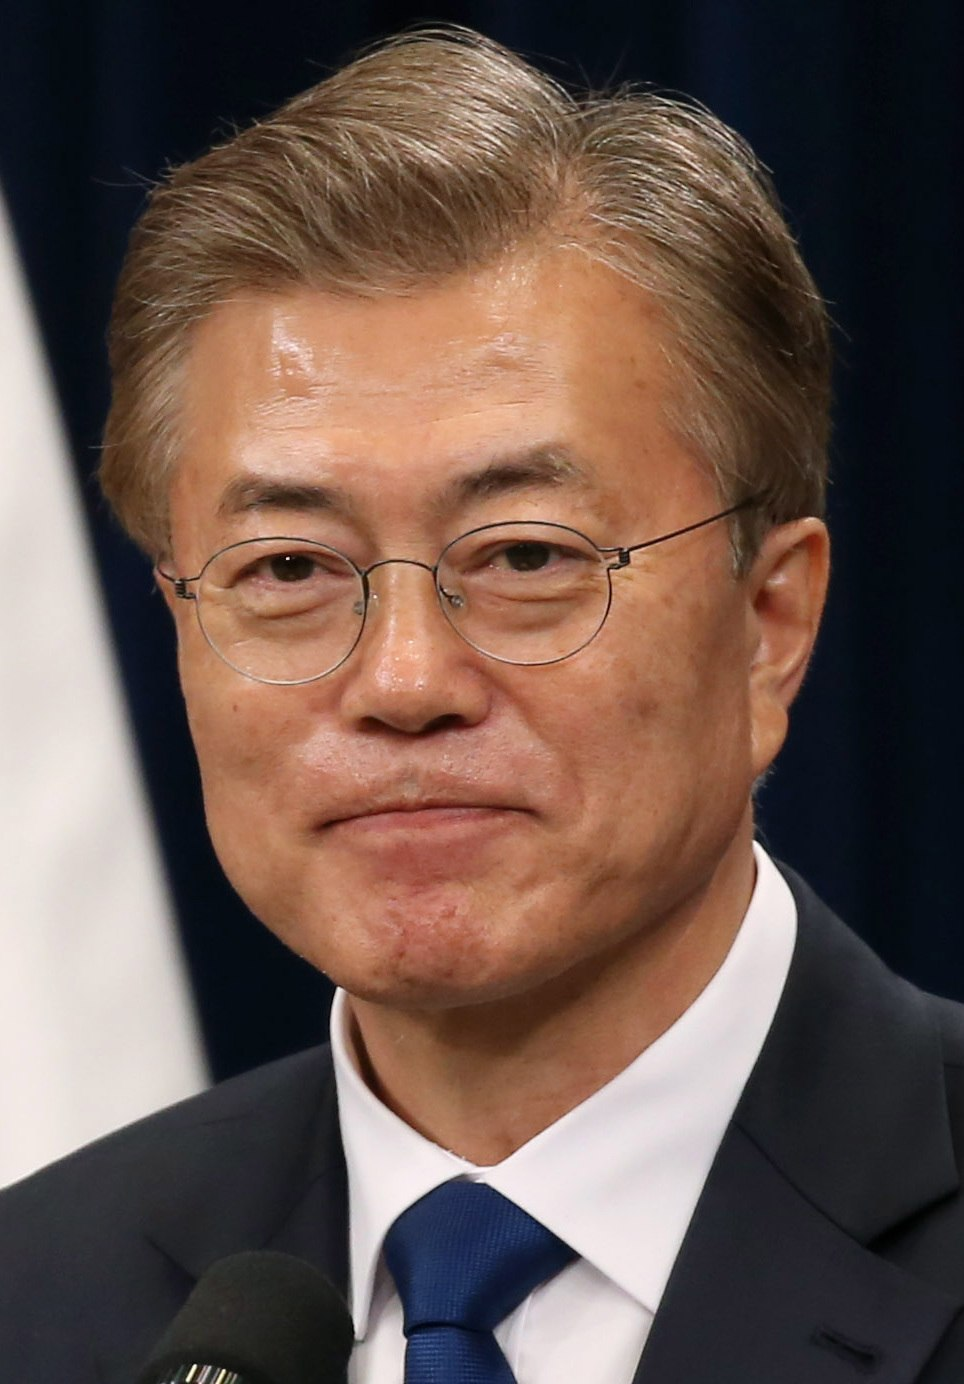 Moon Jae-in May 2017